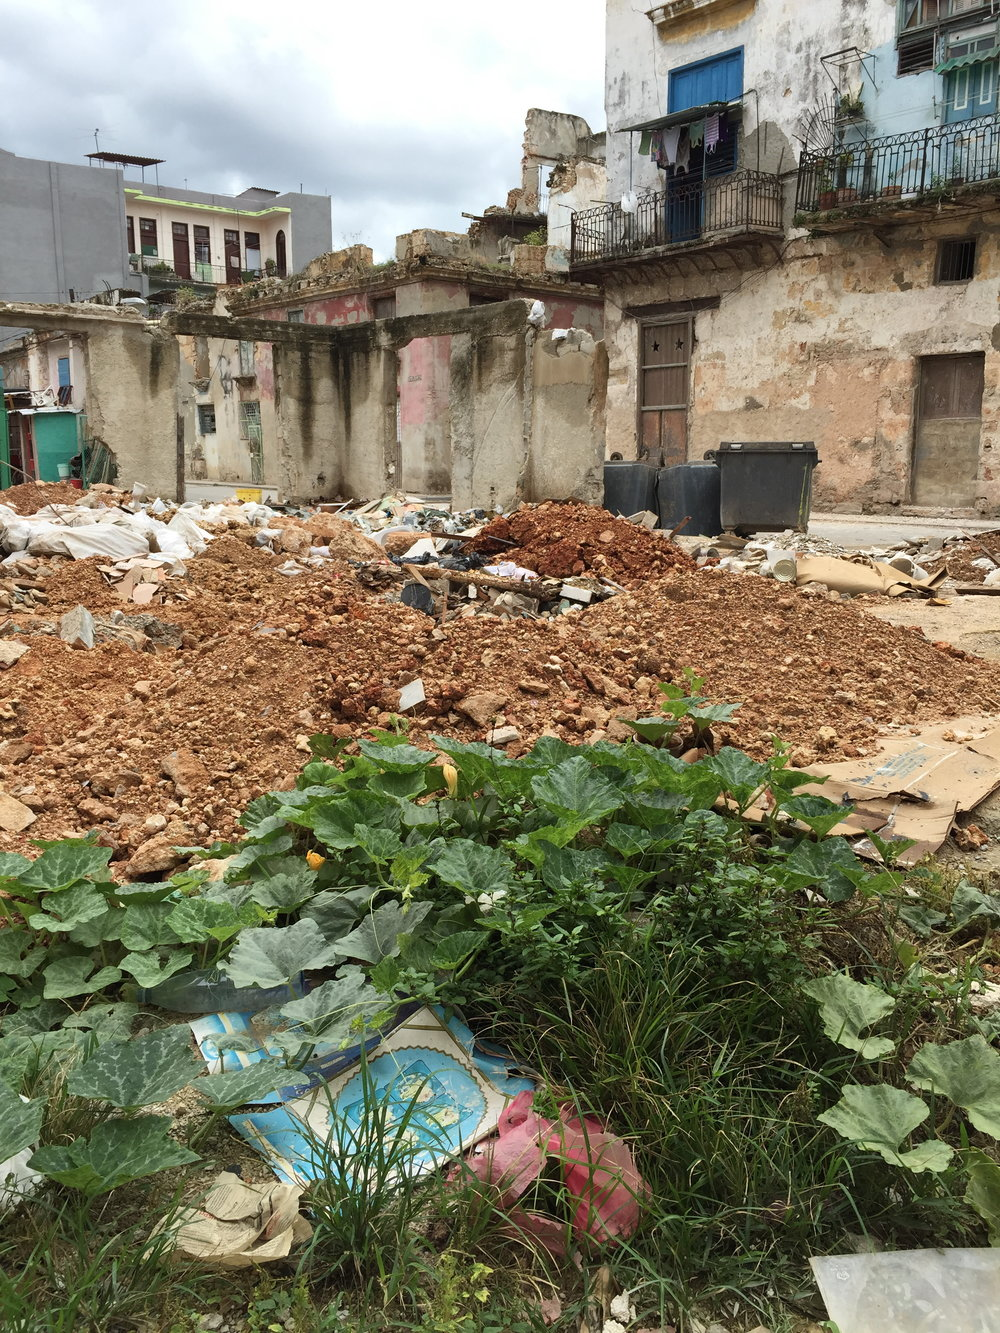 Compost Garden. Vegatables growing in a dump sight. Old Havana, Cuba, 2016